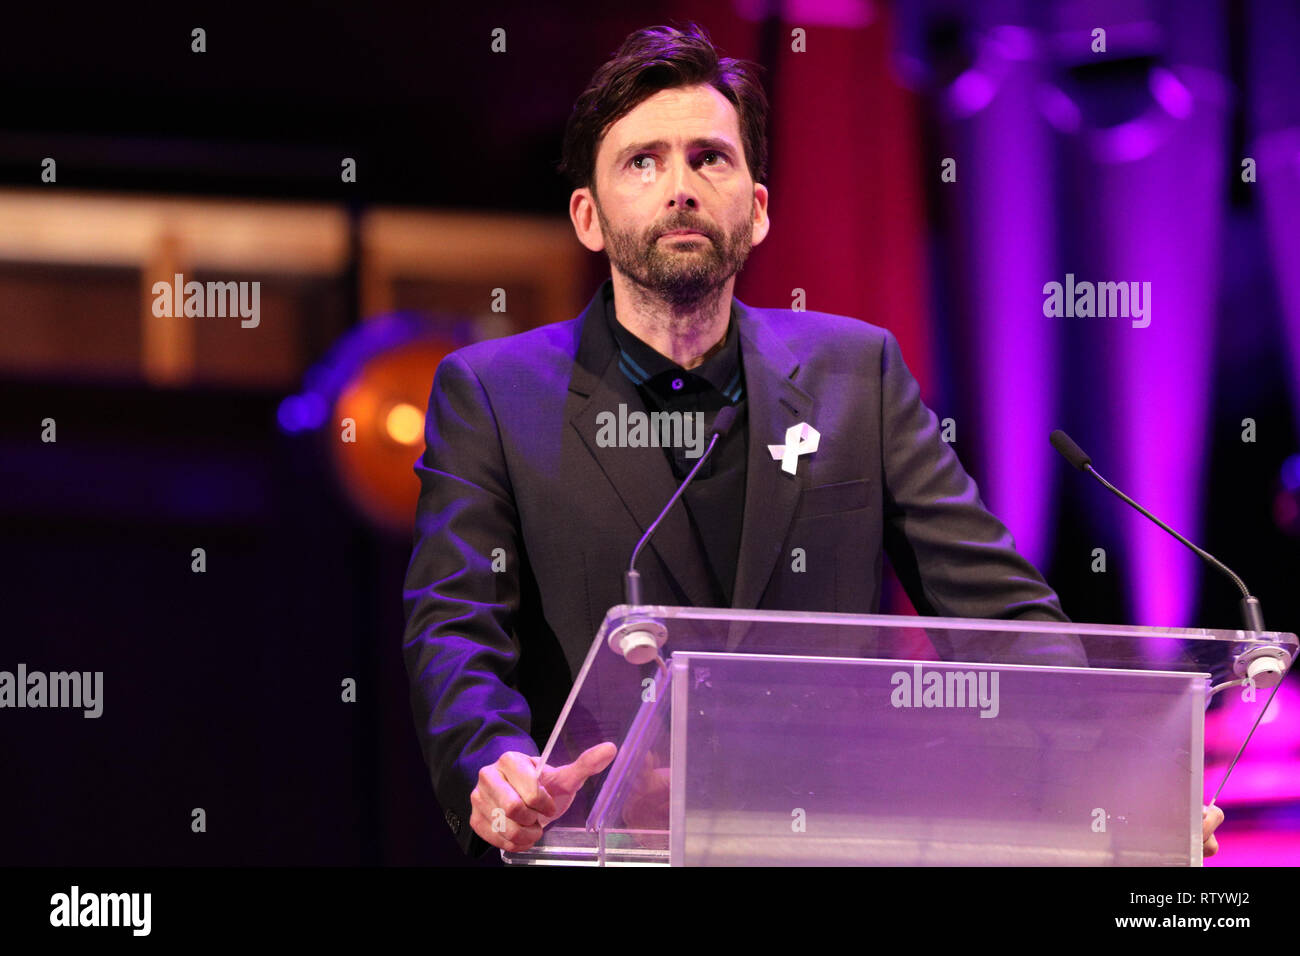 London, UK, 3rd Mar 2019. Actor David Tennant speaks. March4Women is CARE International's annual month of action for gender equality. This year's London event is held at Central Hall, rather than as an outdoor rally, and features speeches, debate and musical performances from celebrity supporters. Credit: Imageplotter/Alamy Live News - Stock Image